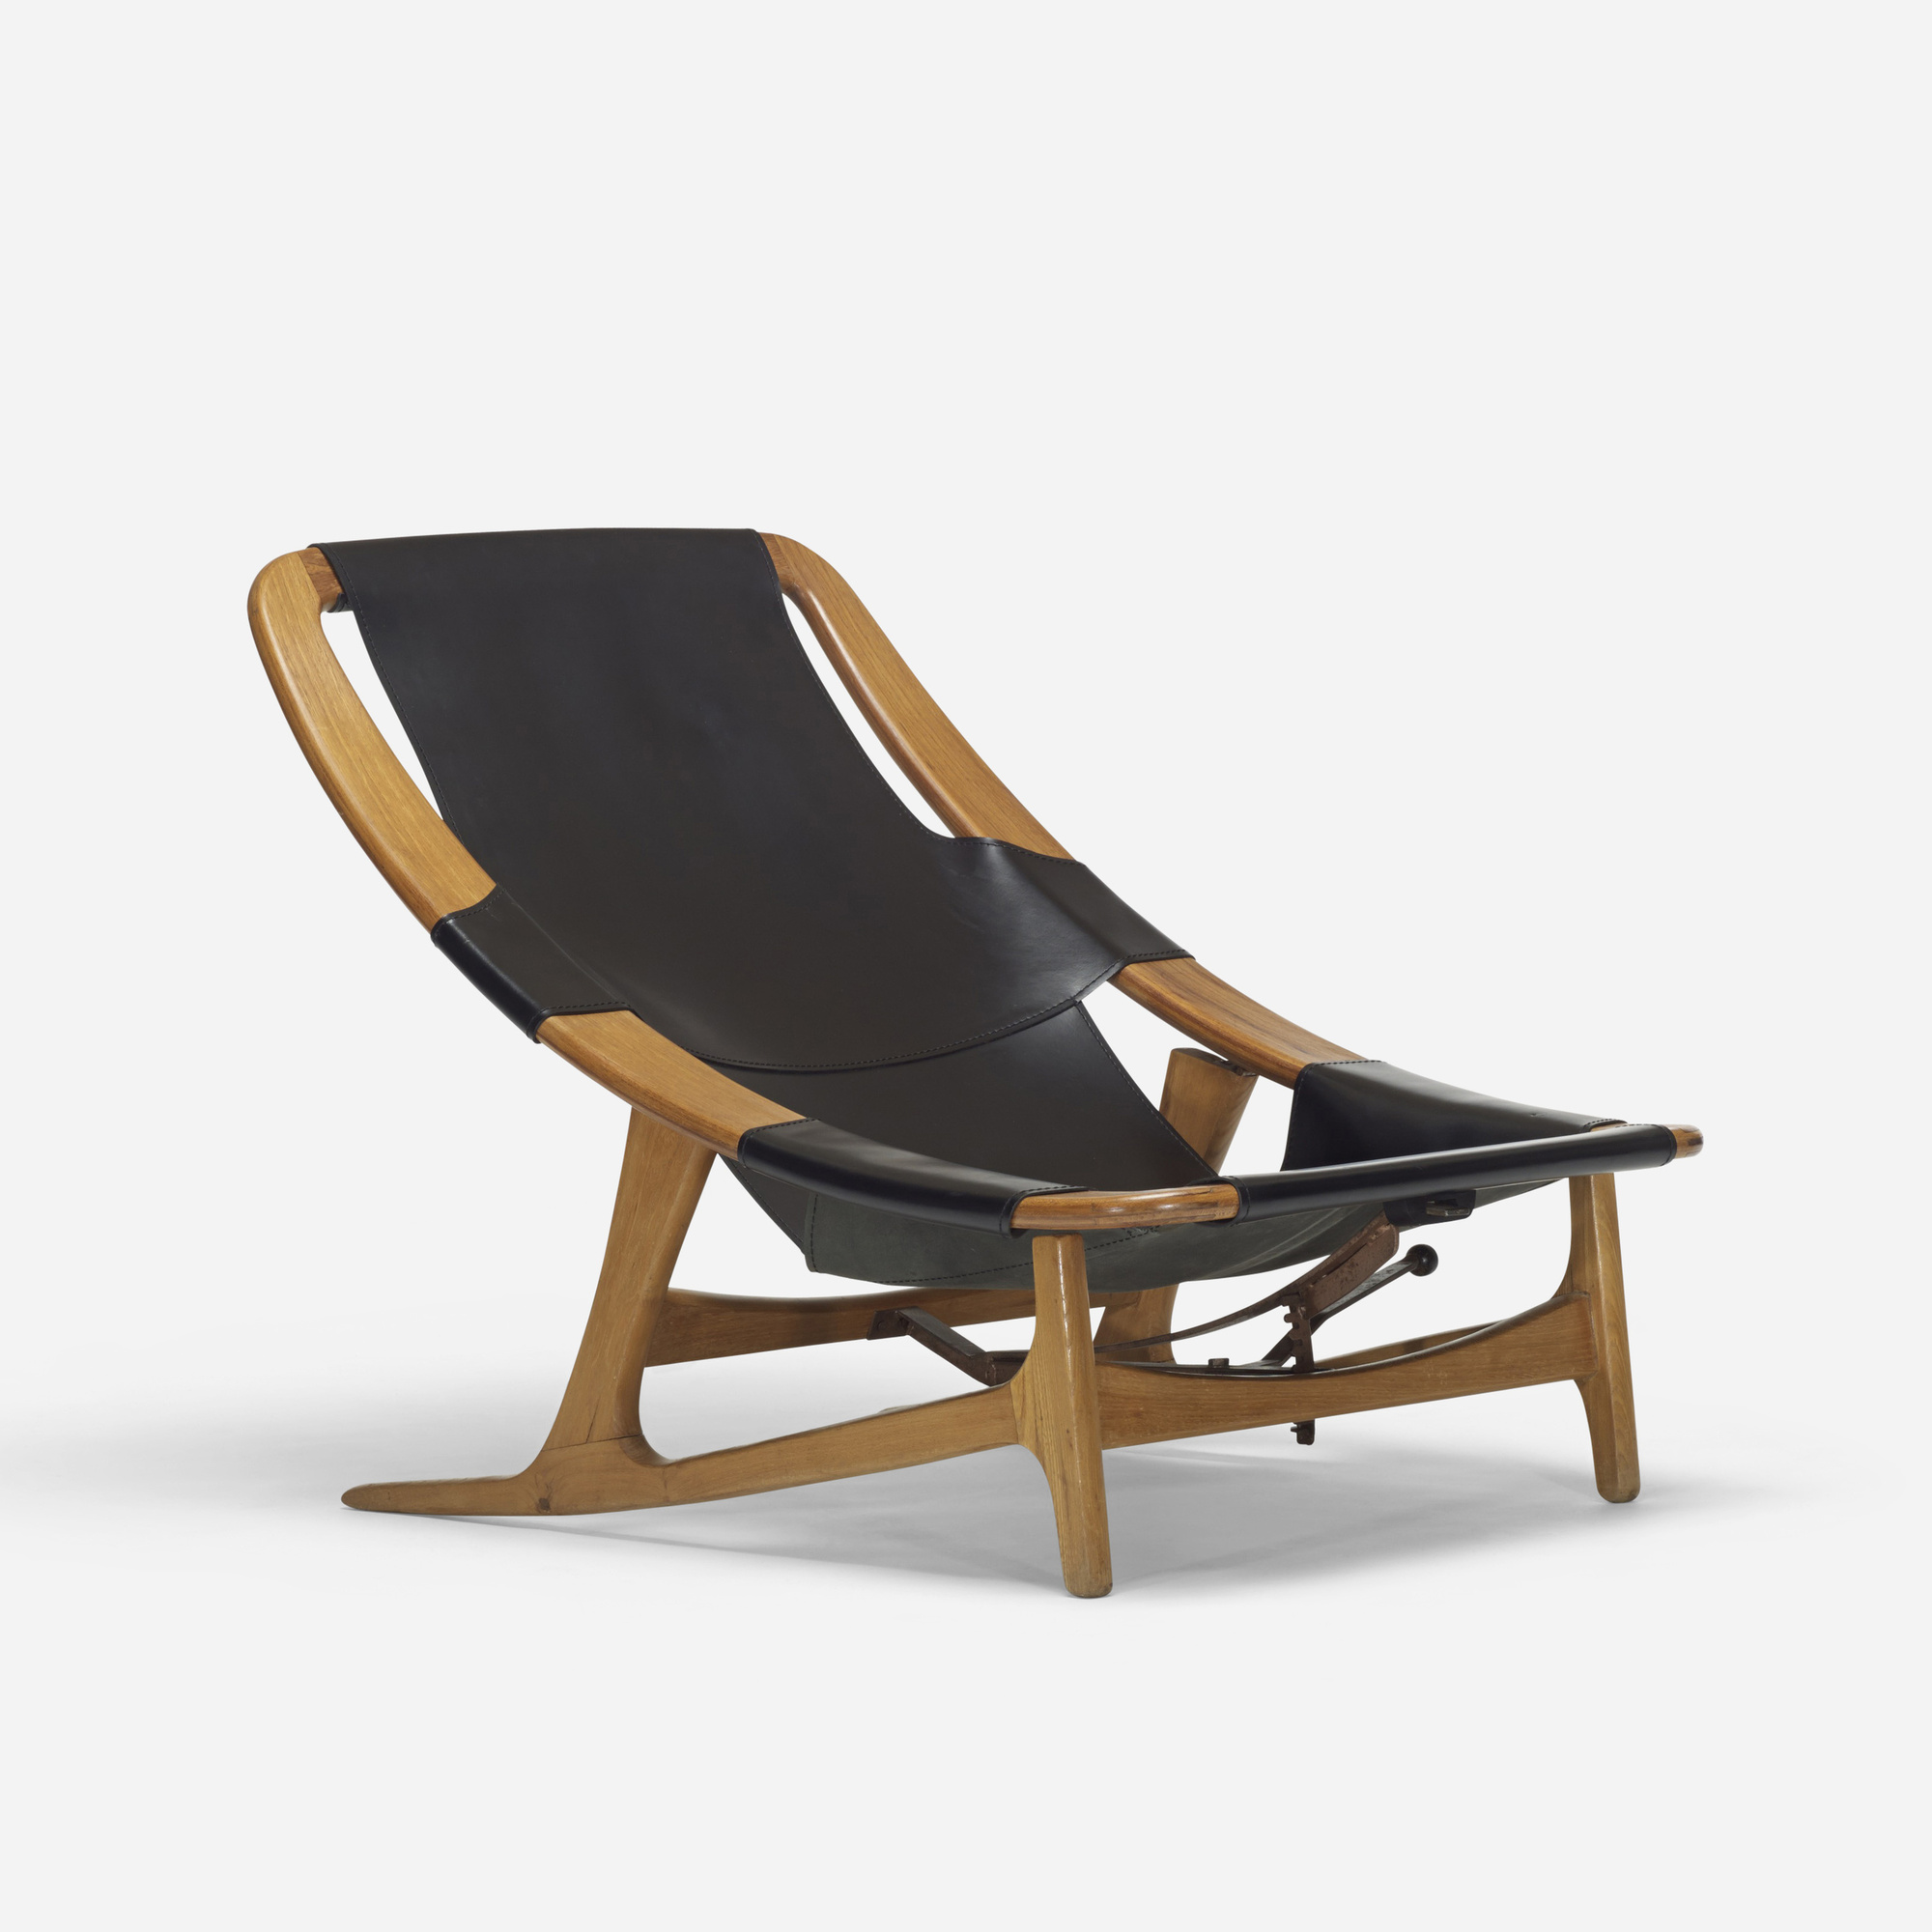 427: Arne Tidemand Ruud / Car lounge chair (1 of 3)